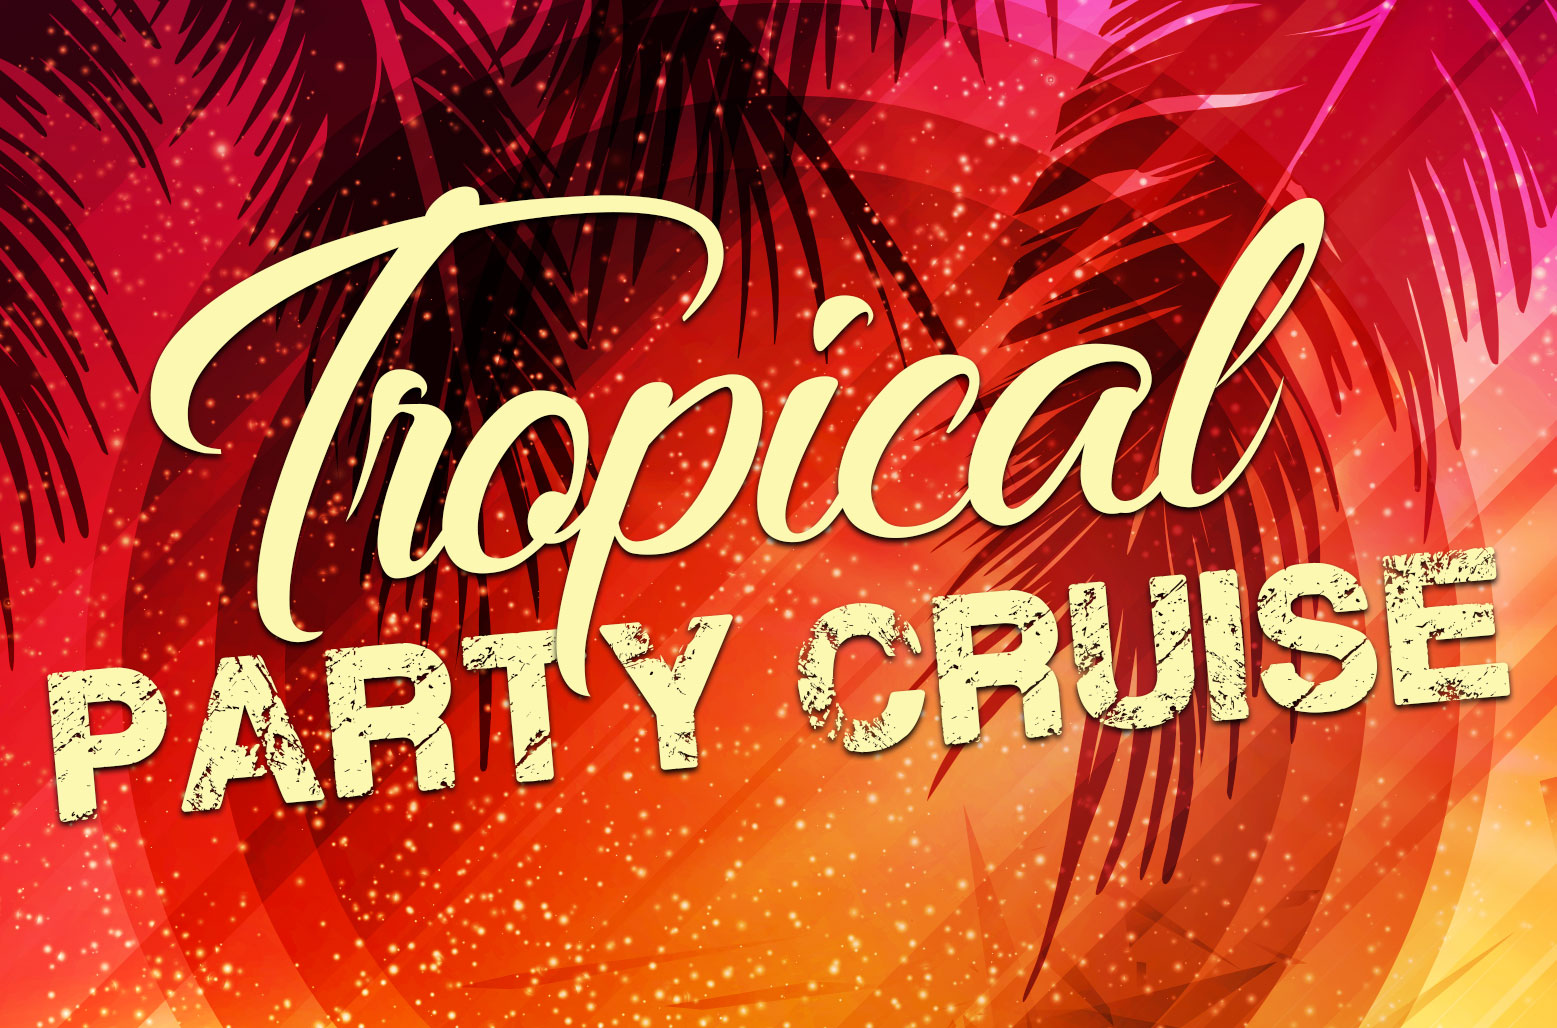 Tropical Party Cruise